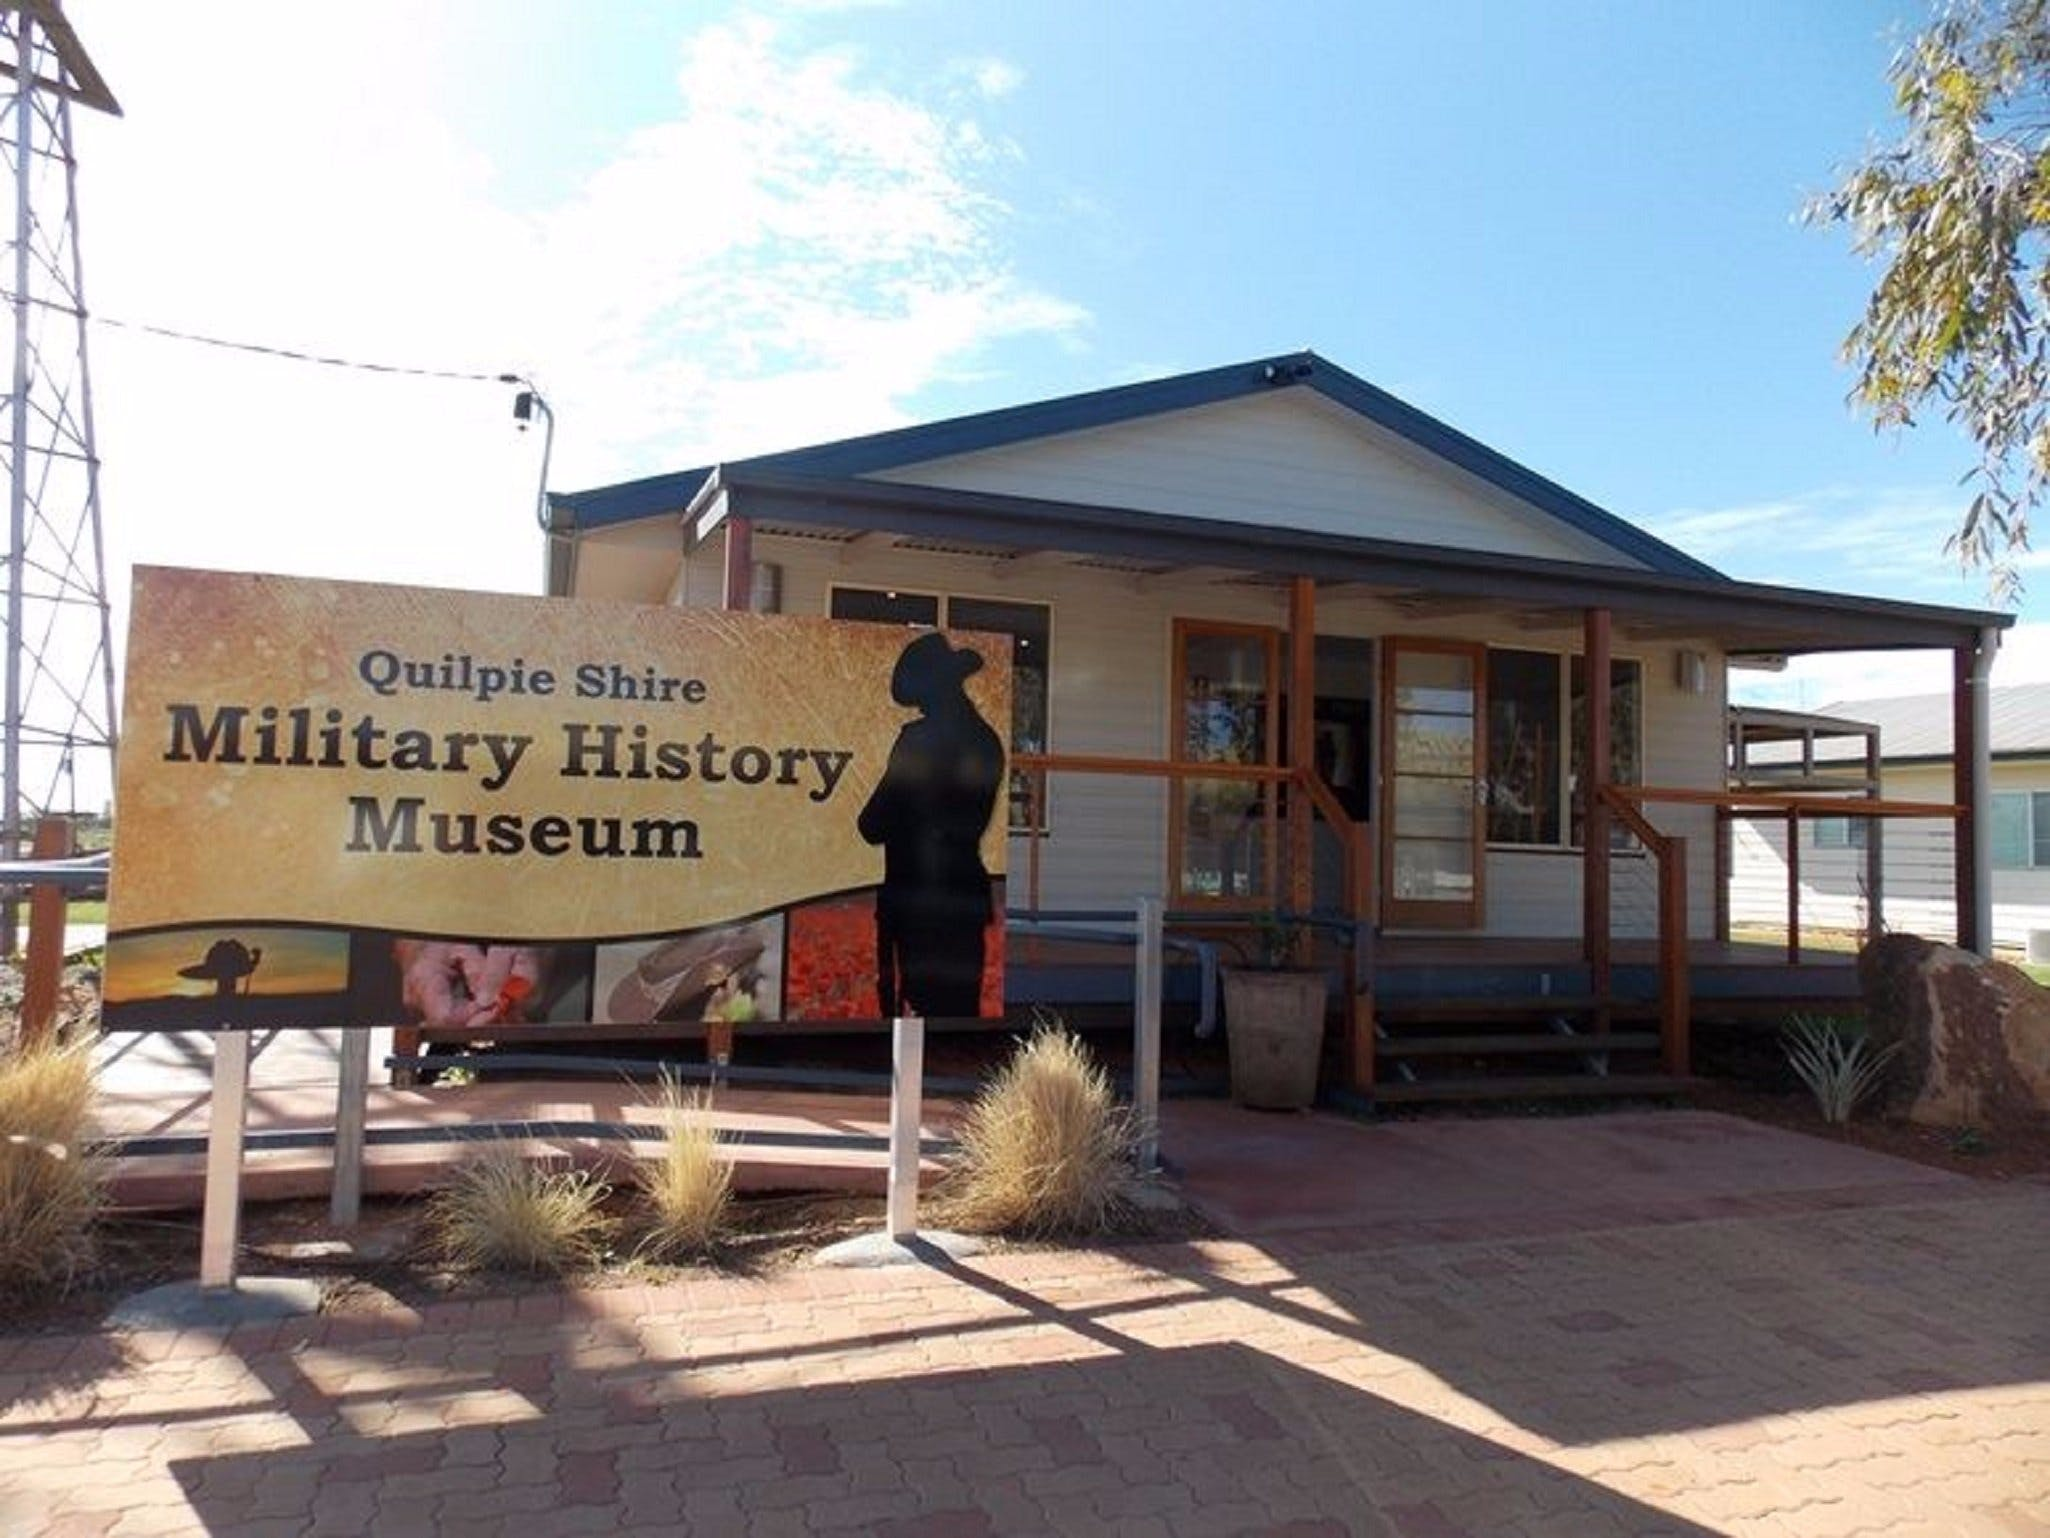 Quilpie Shire Military History Museum - Accommodation Gold Coast